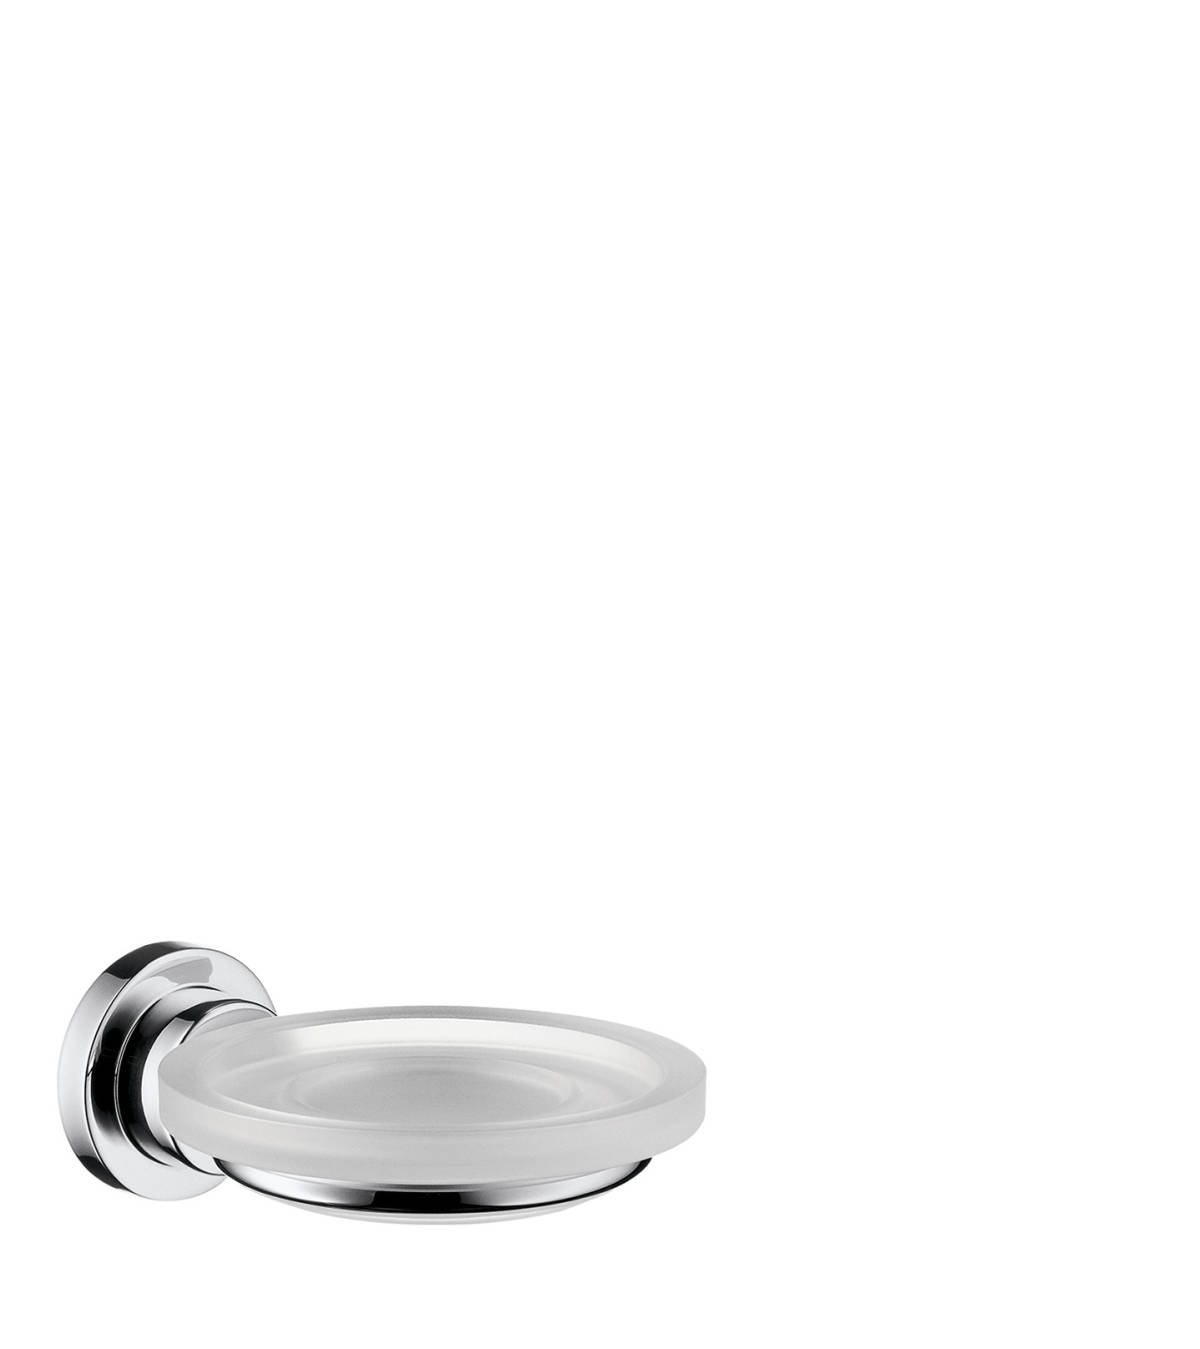 Soap dish, Polished Gold Optic, 41733990